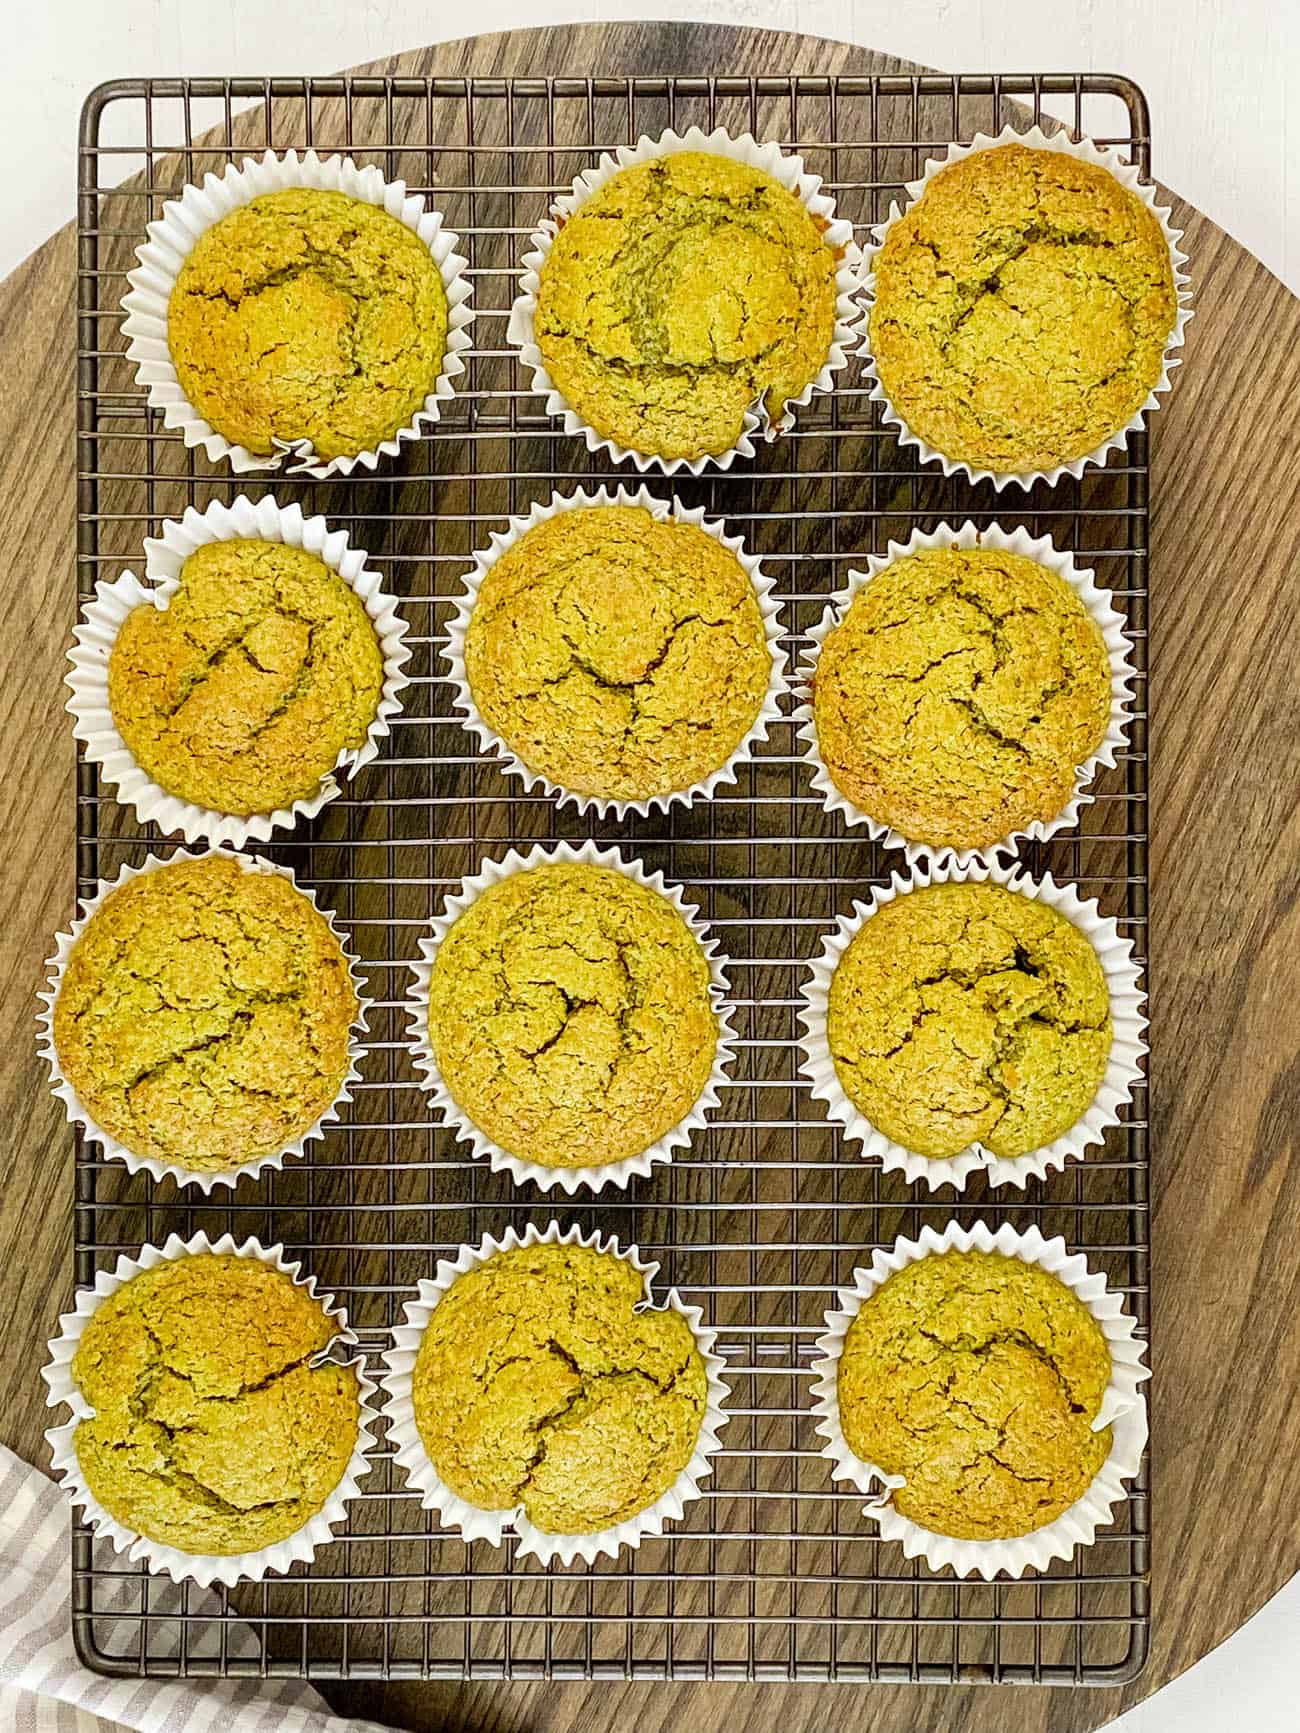 easy matcha muffins fresh out of the oven on a wire rack